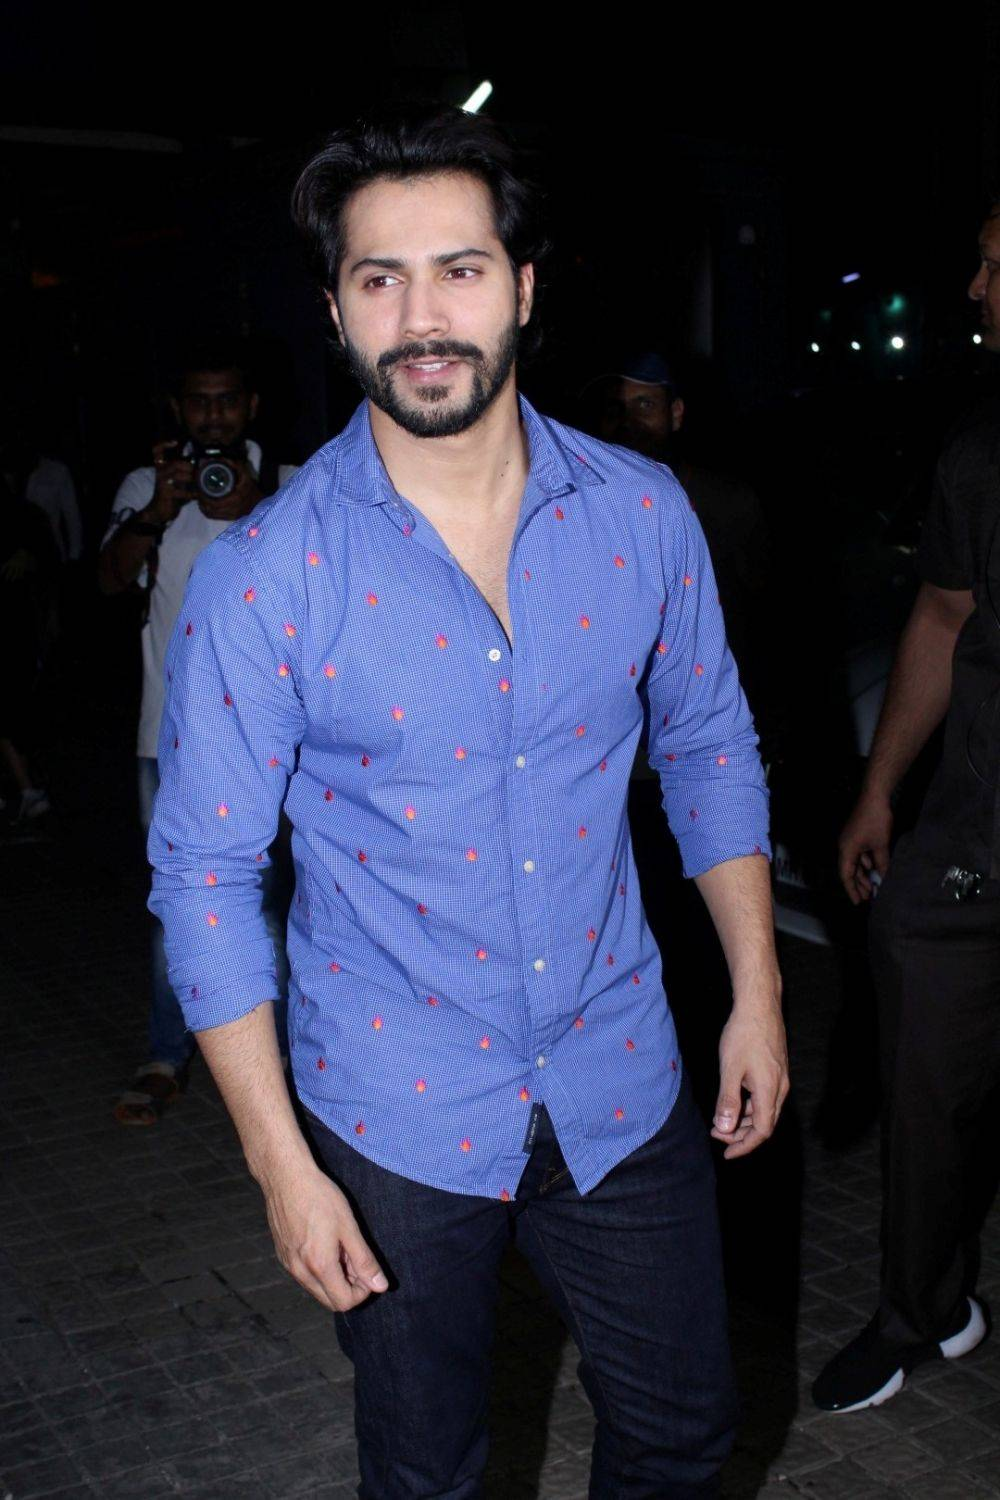 Varun Dhawan reveals that he will soon announce his next